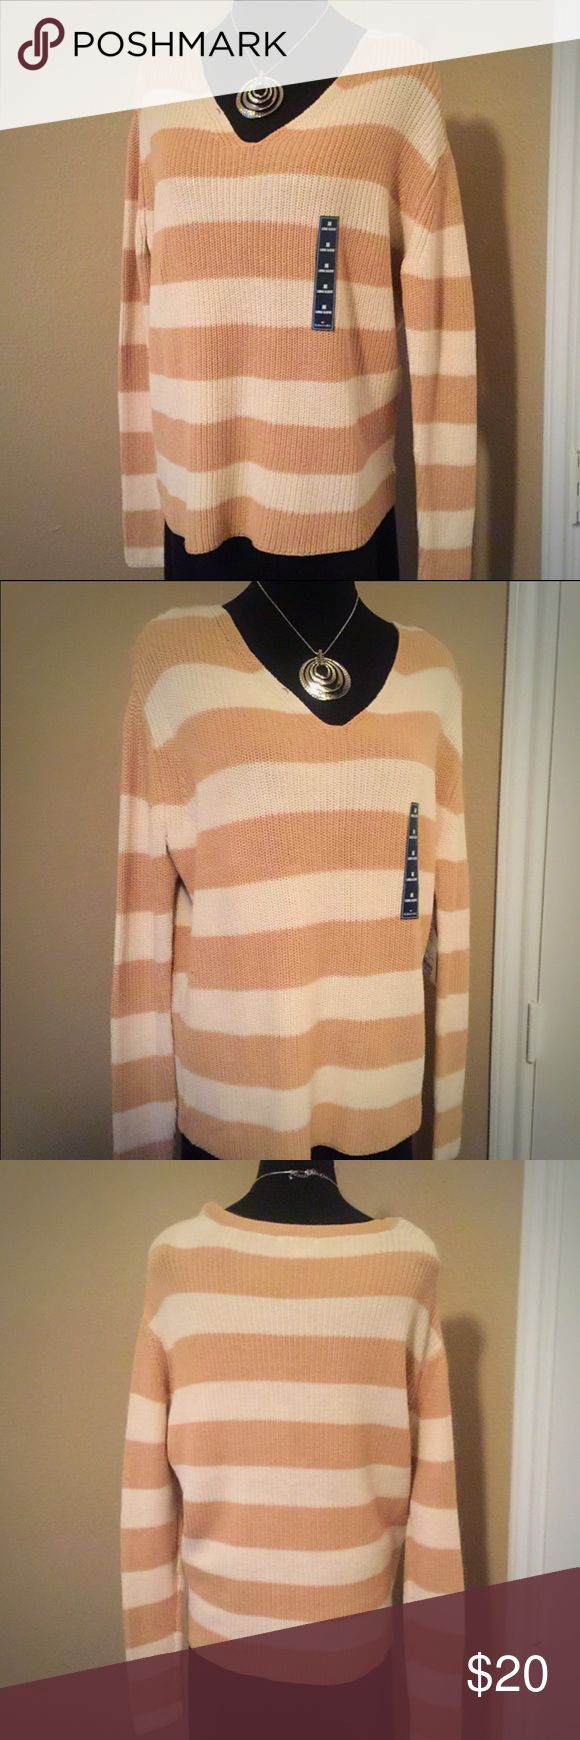 St John's Bay Sweater NWT | St John's Bay Sweater | Various Sizes | Comfortable winter everyday casual wear sweater | Additional pictures available upon request | Bundles and Offers Welcomed  Tan & Creme Stripped 1 - Medium, 1 - Large & 1 - XL Silver Grey & Creme Stripped 1 - Medium, 1 - Large & 1 St. John's Bay Sweaters